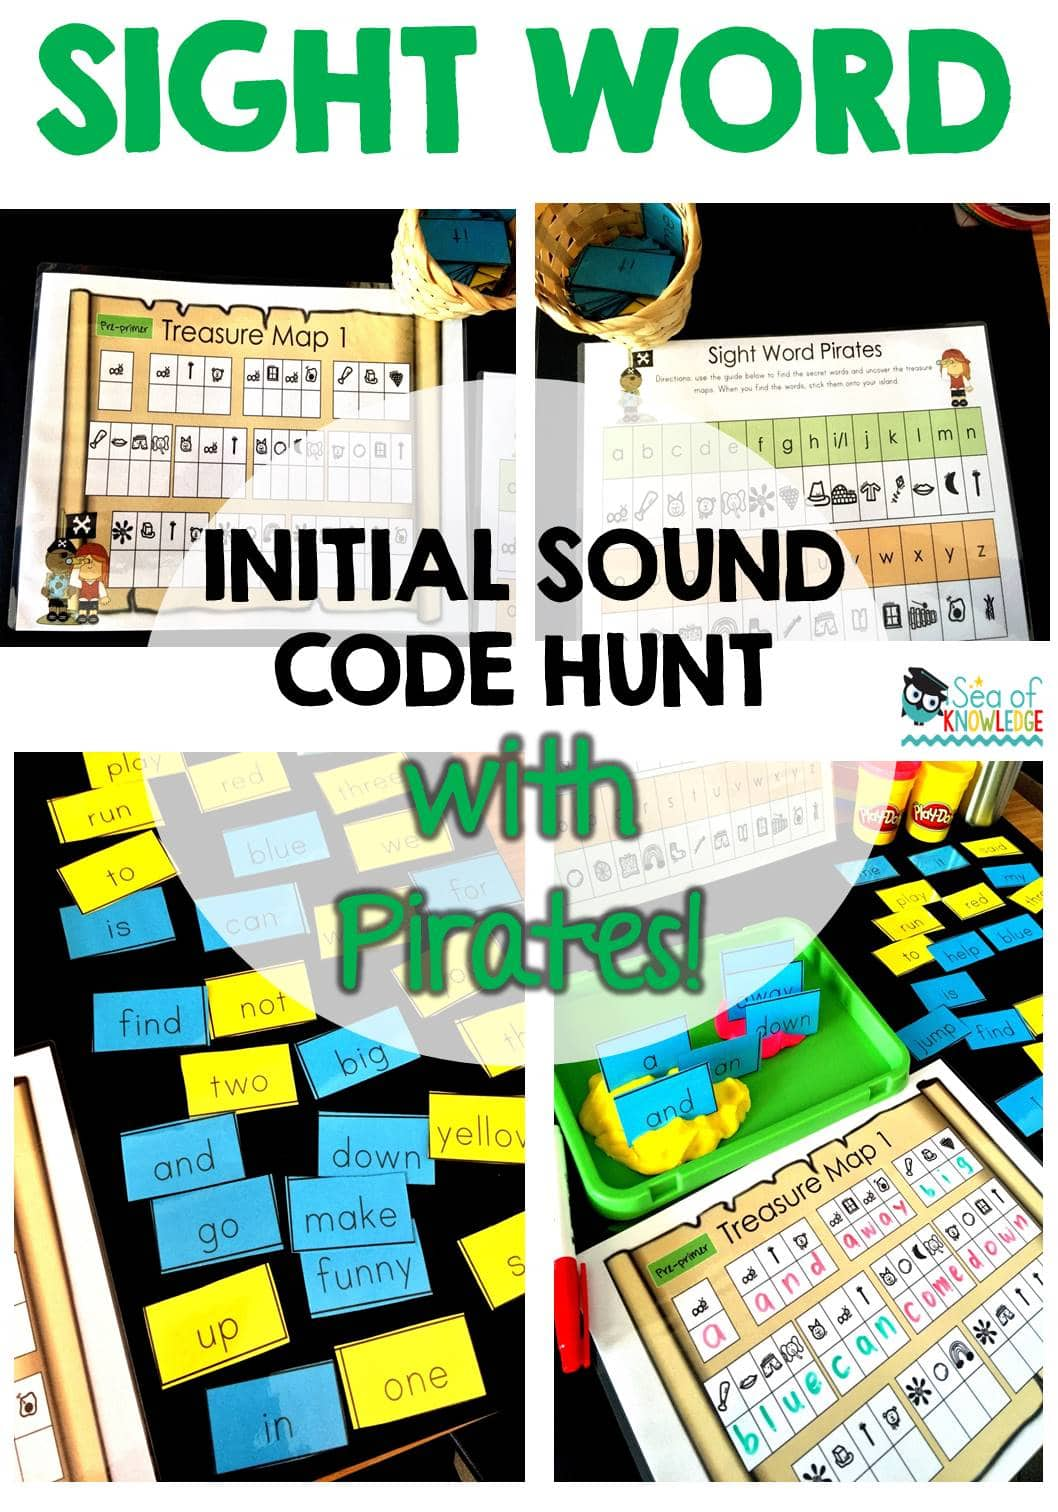 The Ultimate Game To Engage Kids With Sight Words